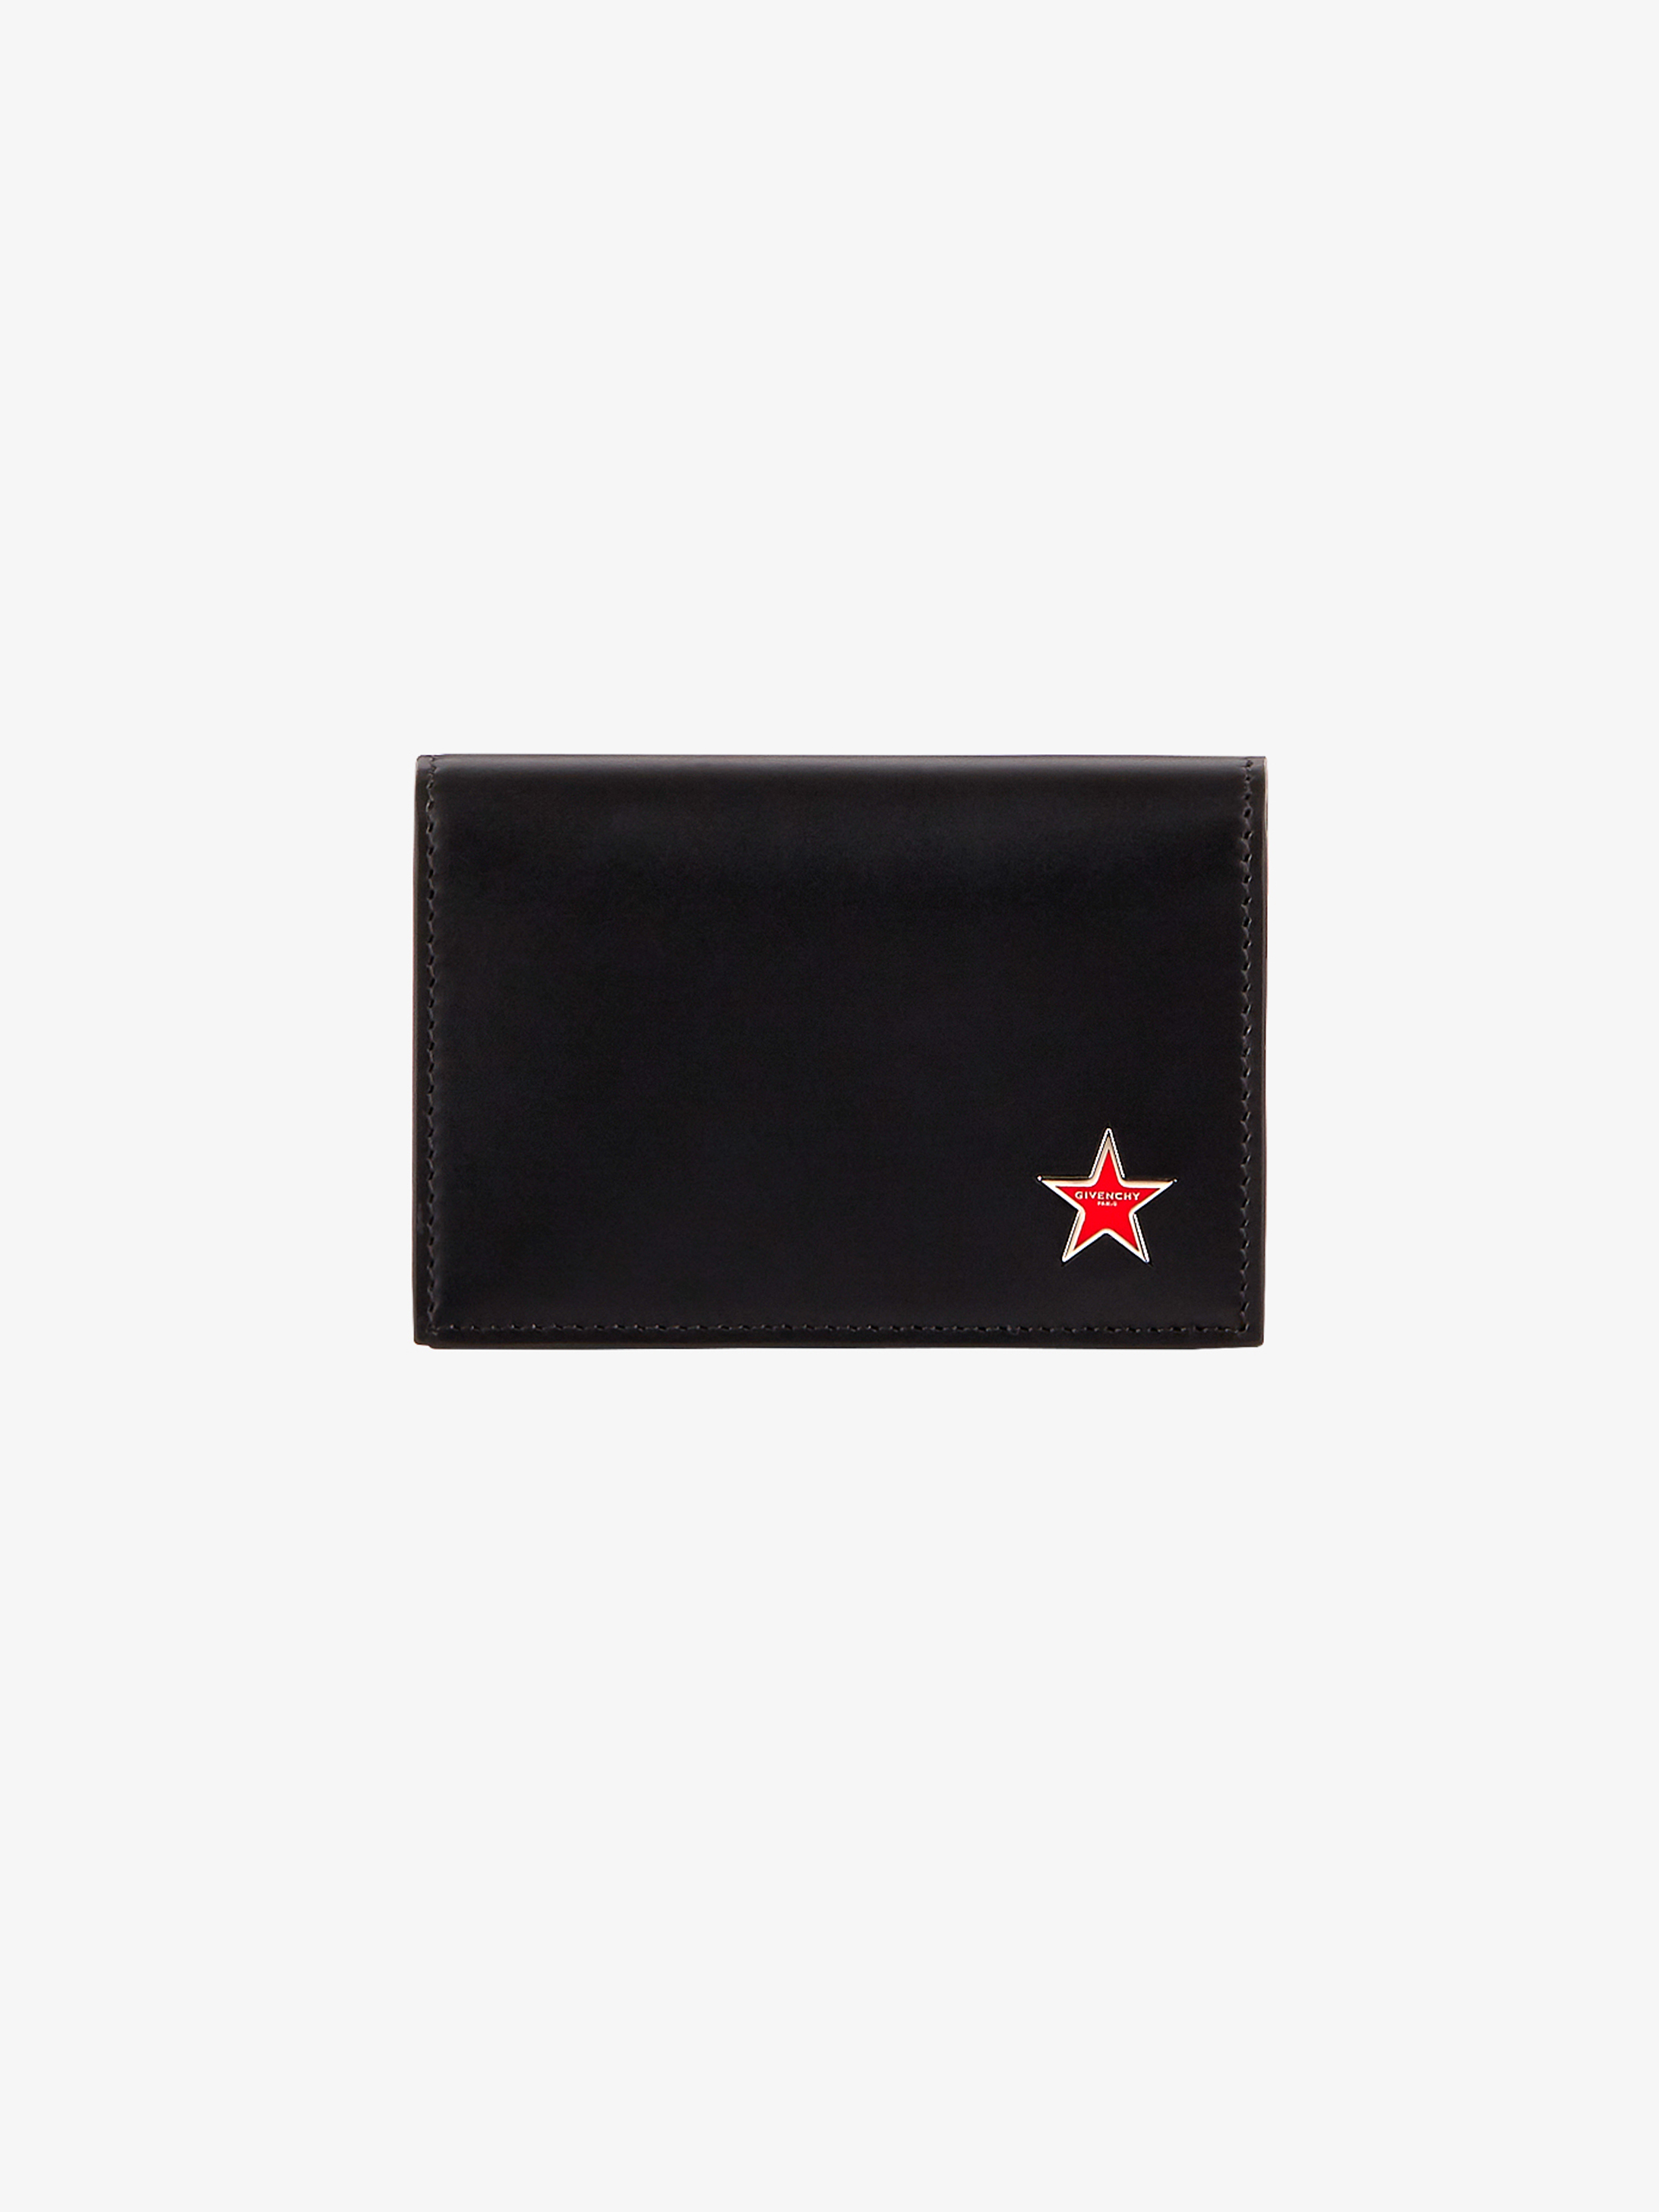 Metallic star leather card holder